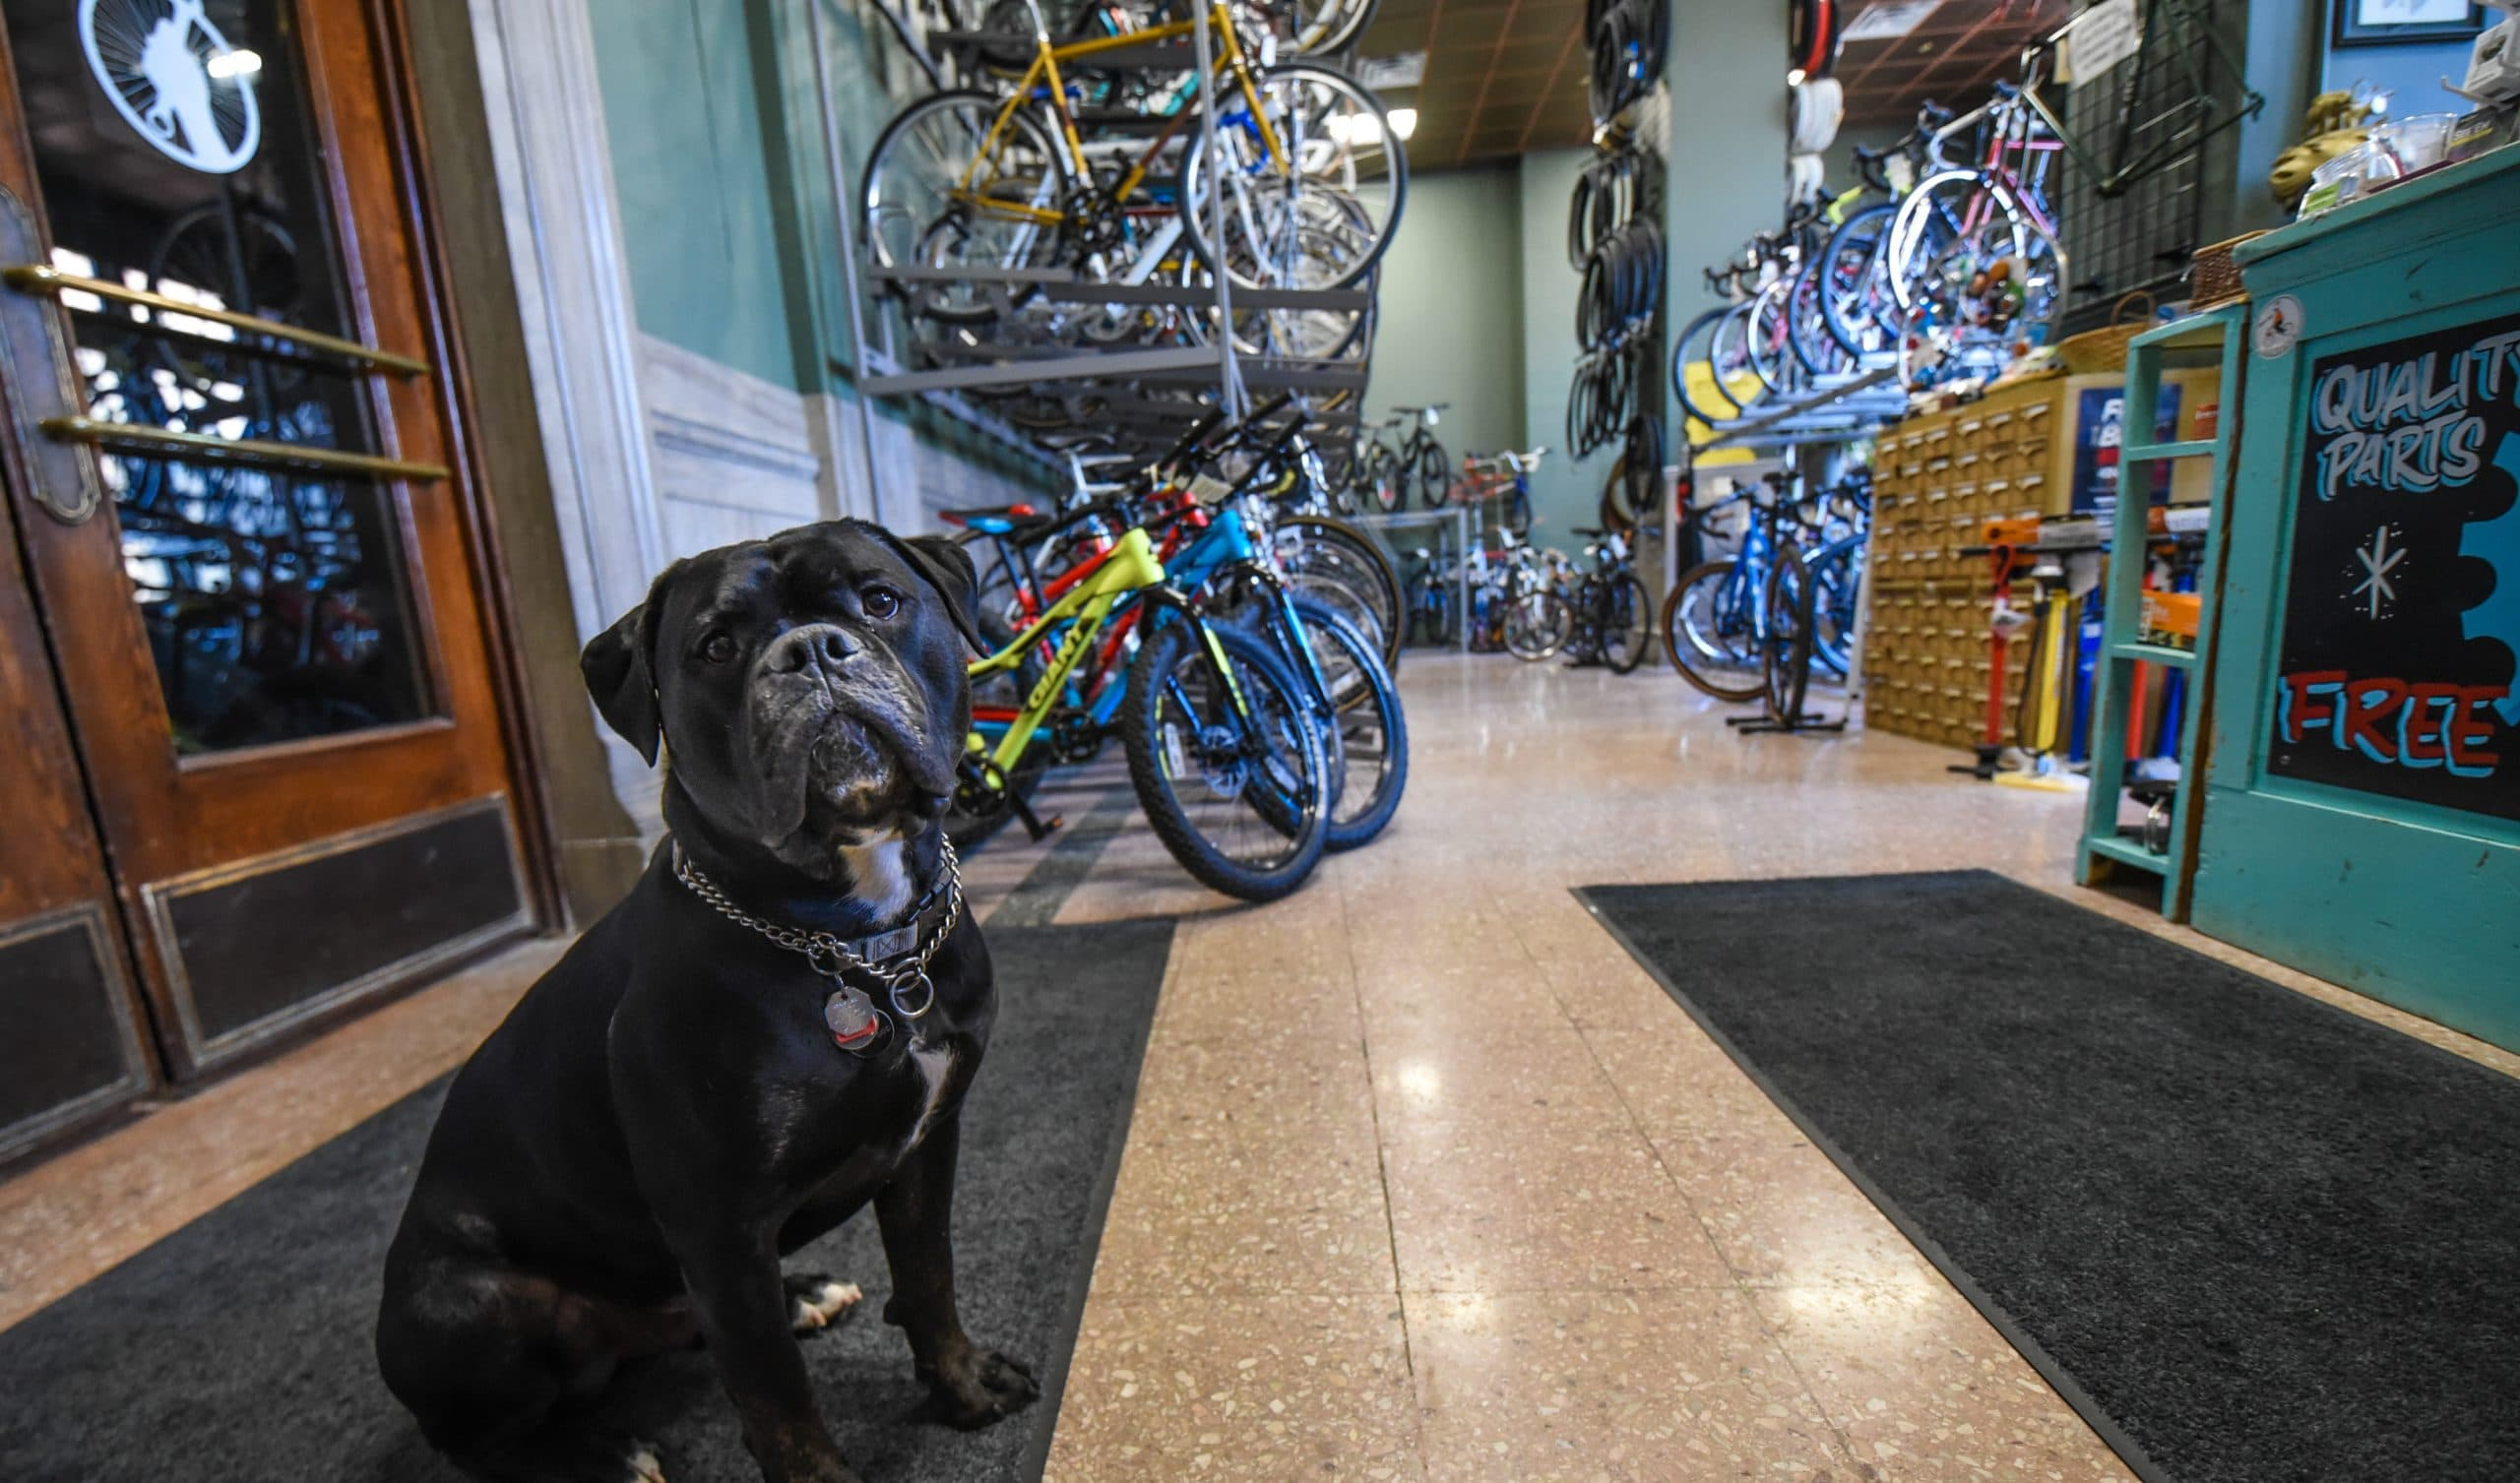 Dog in front of bikes in shop